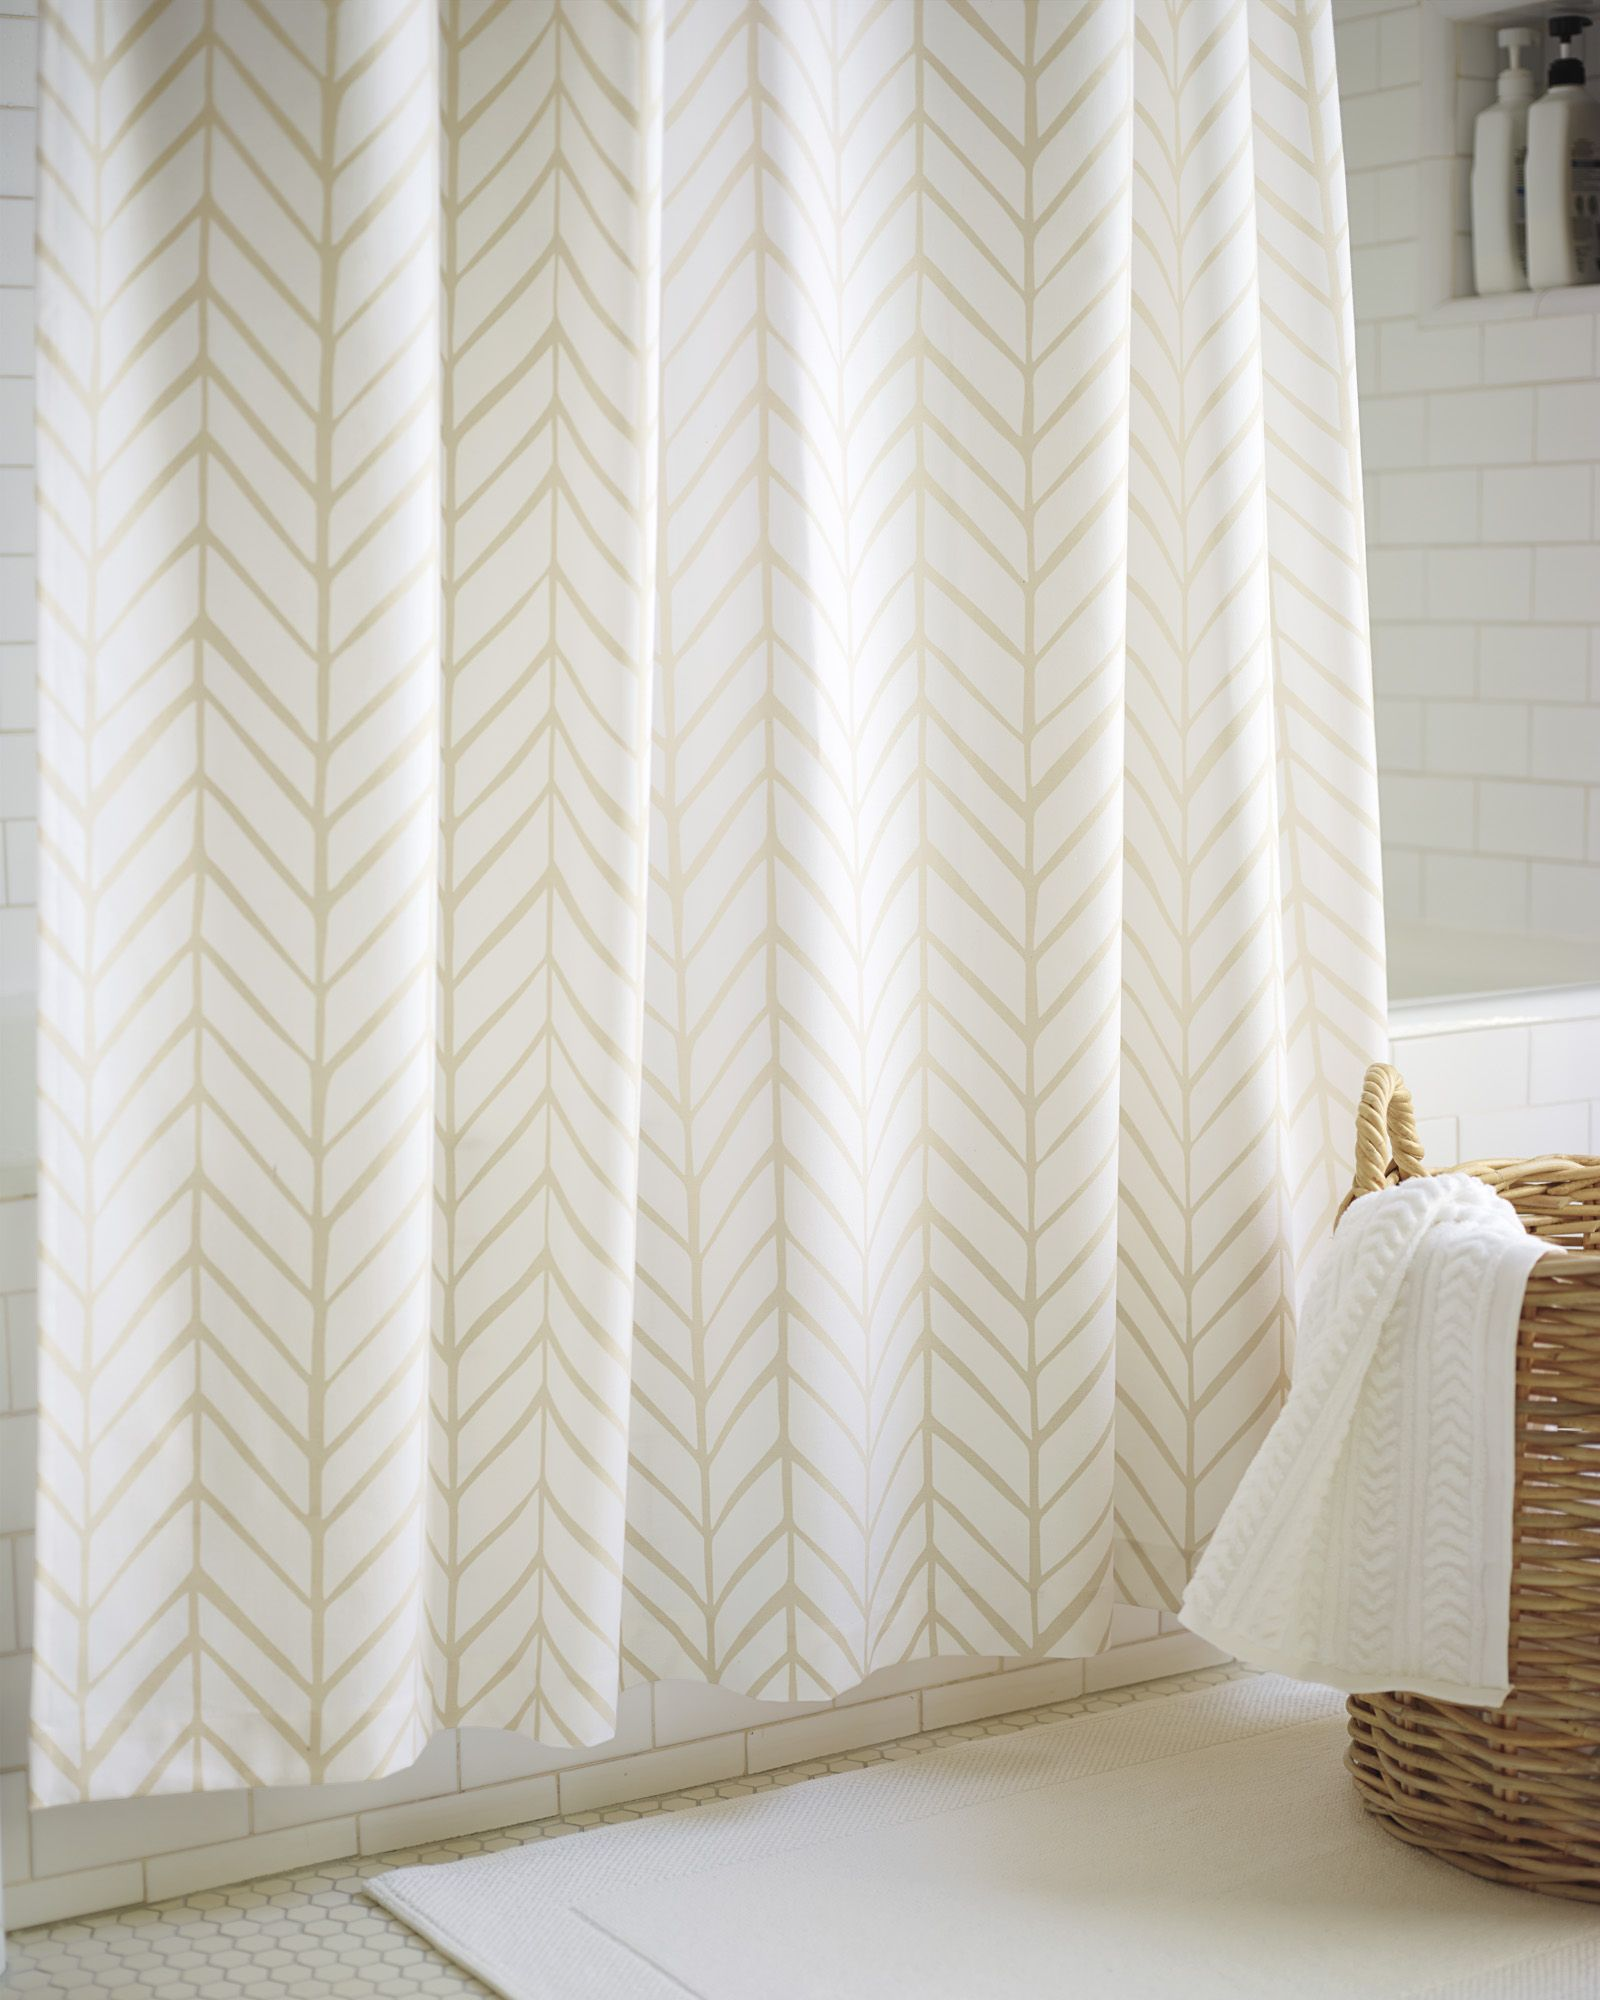 Feather Shower CurtainFeather Curtain